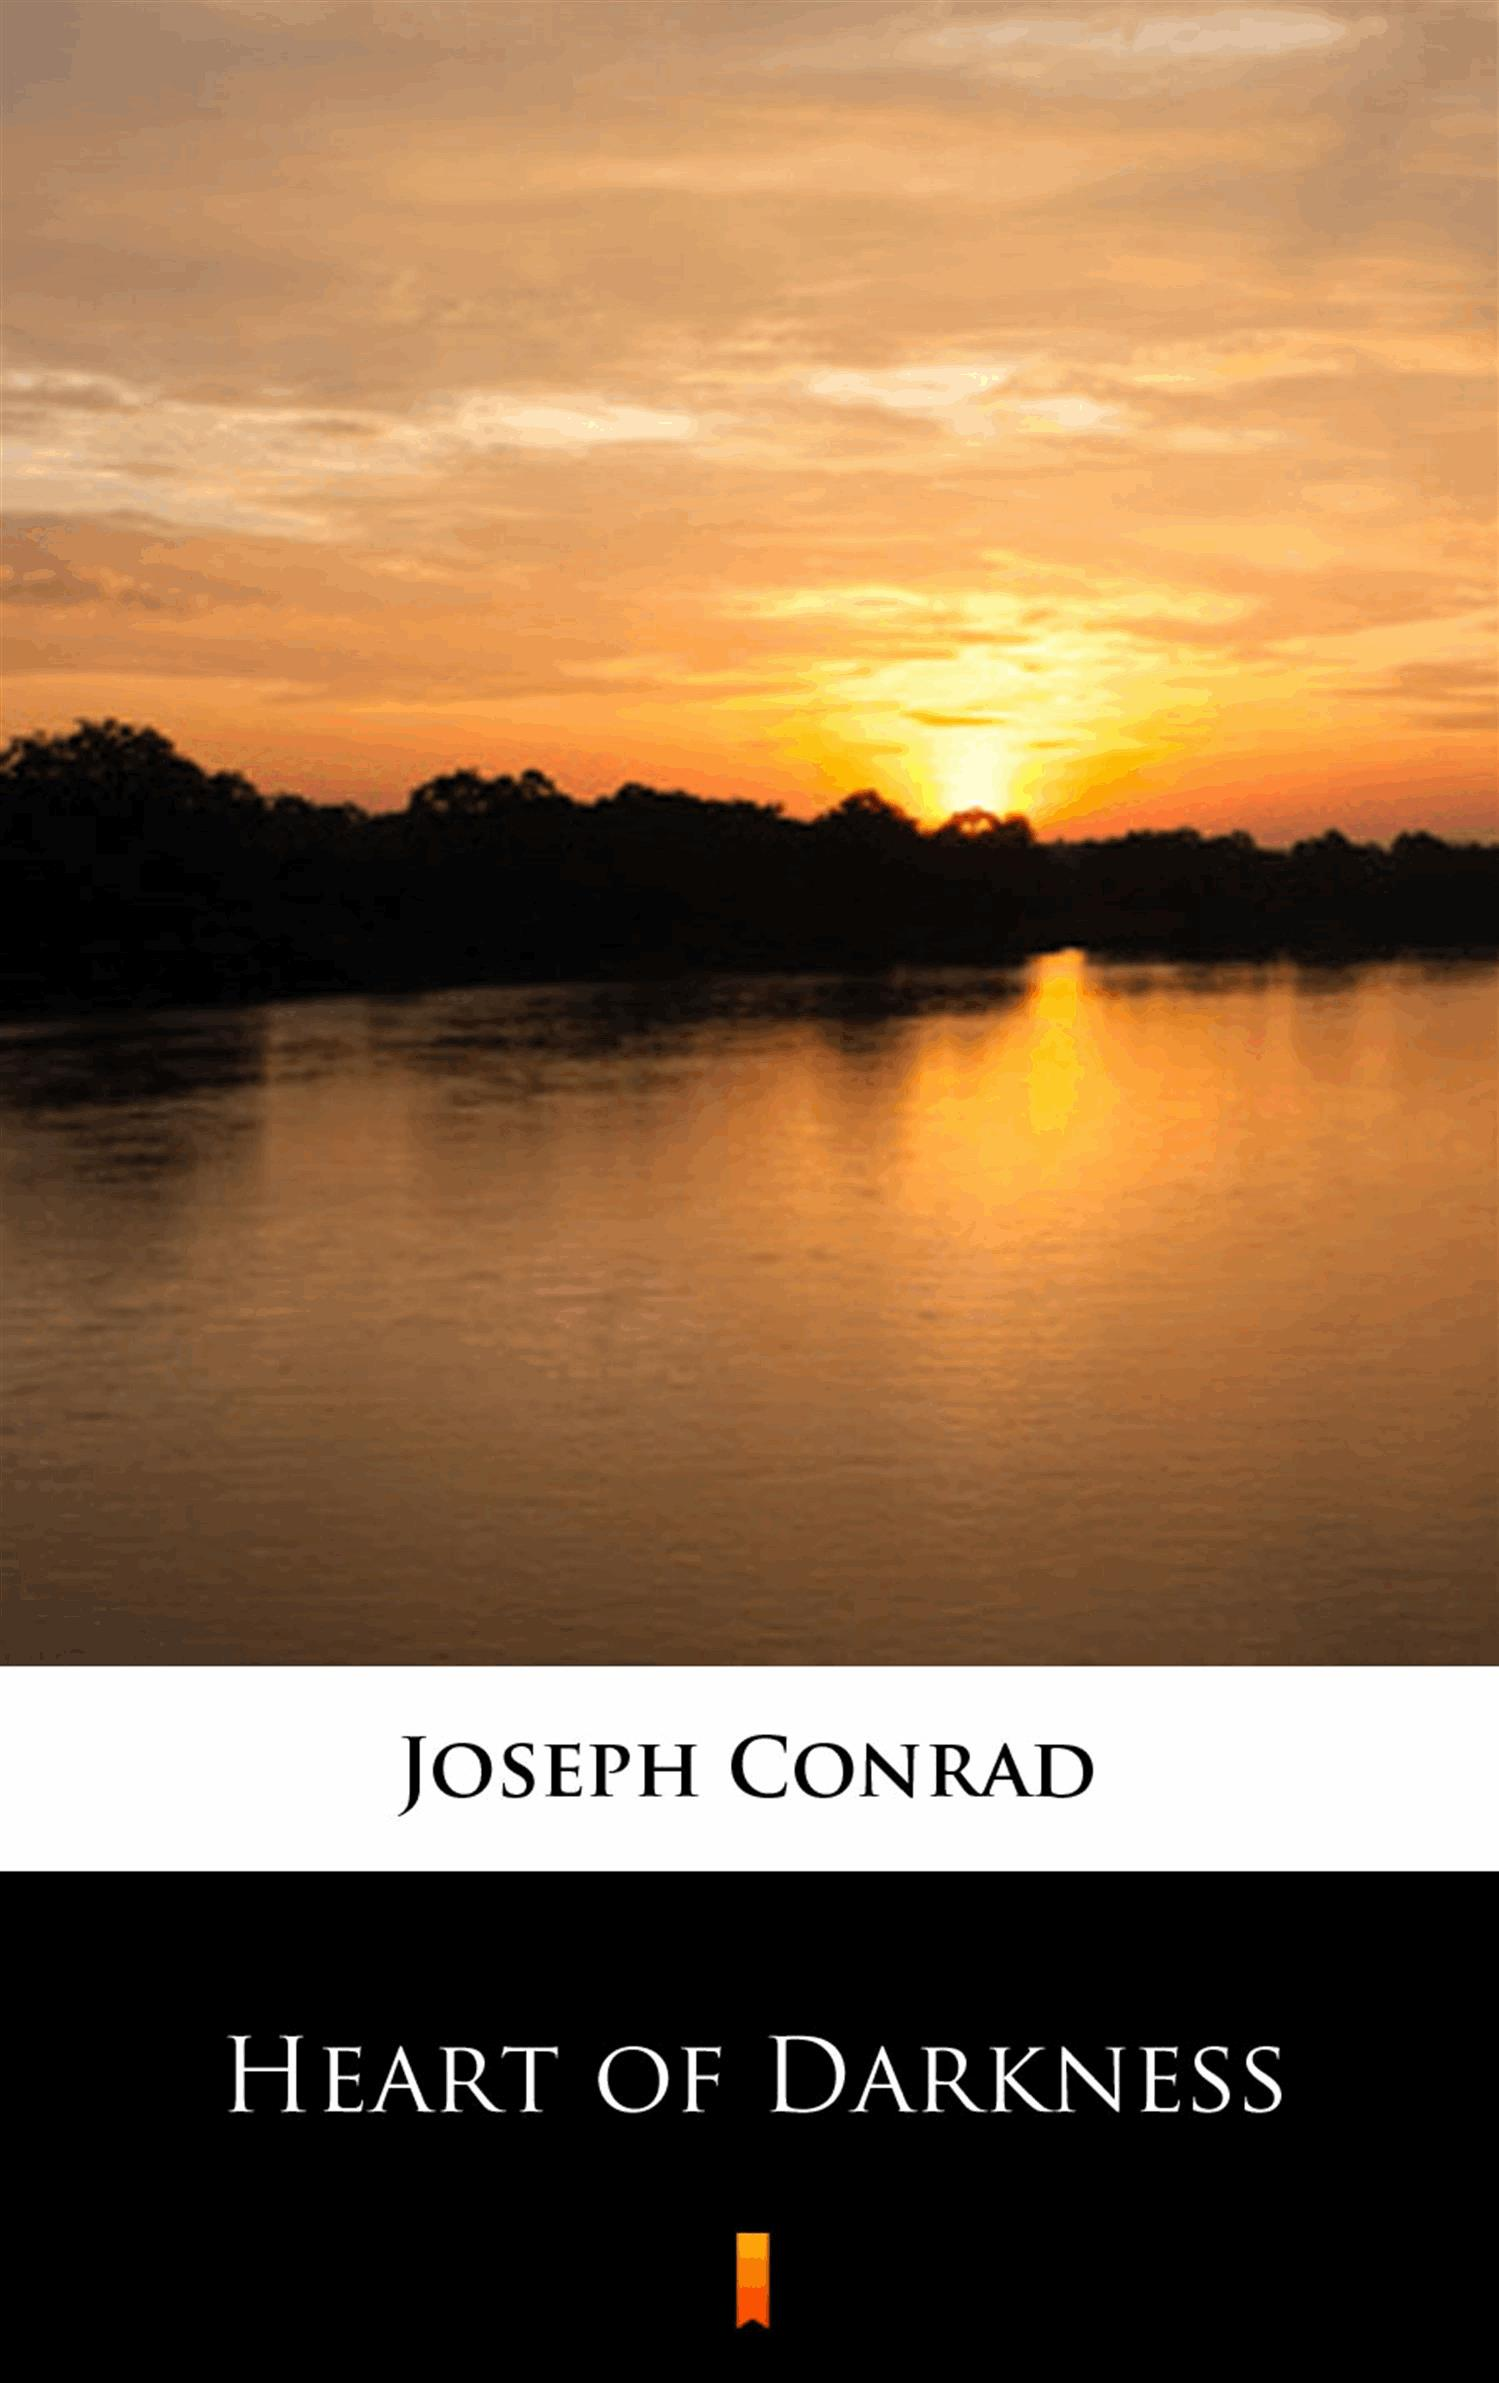 use of light and darkness in joseph This article explains some of the symbols found in joseph conrad's heart of darkness, including darkness/light, women, kurtz's painting, the knitting women, and the accountant use this guide to study symbolism in heart of darkness.